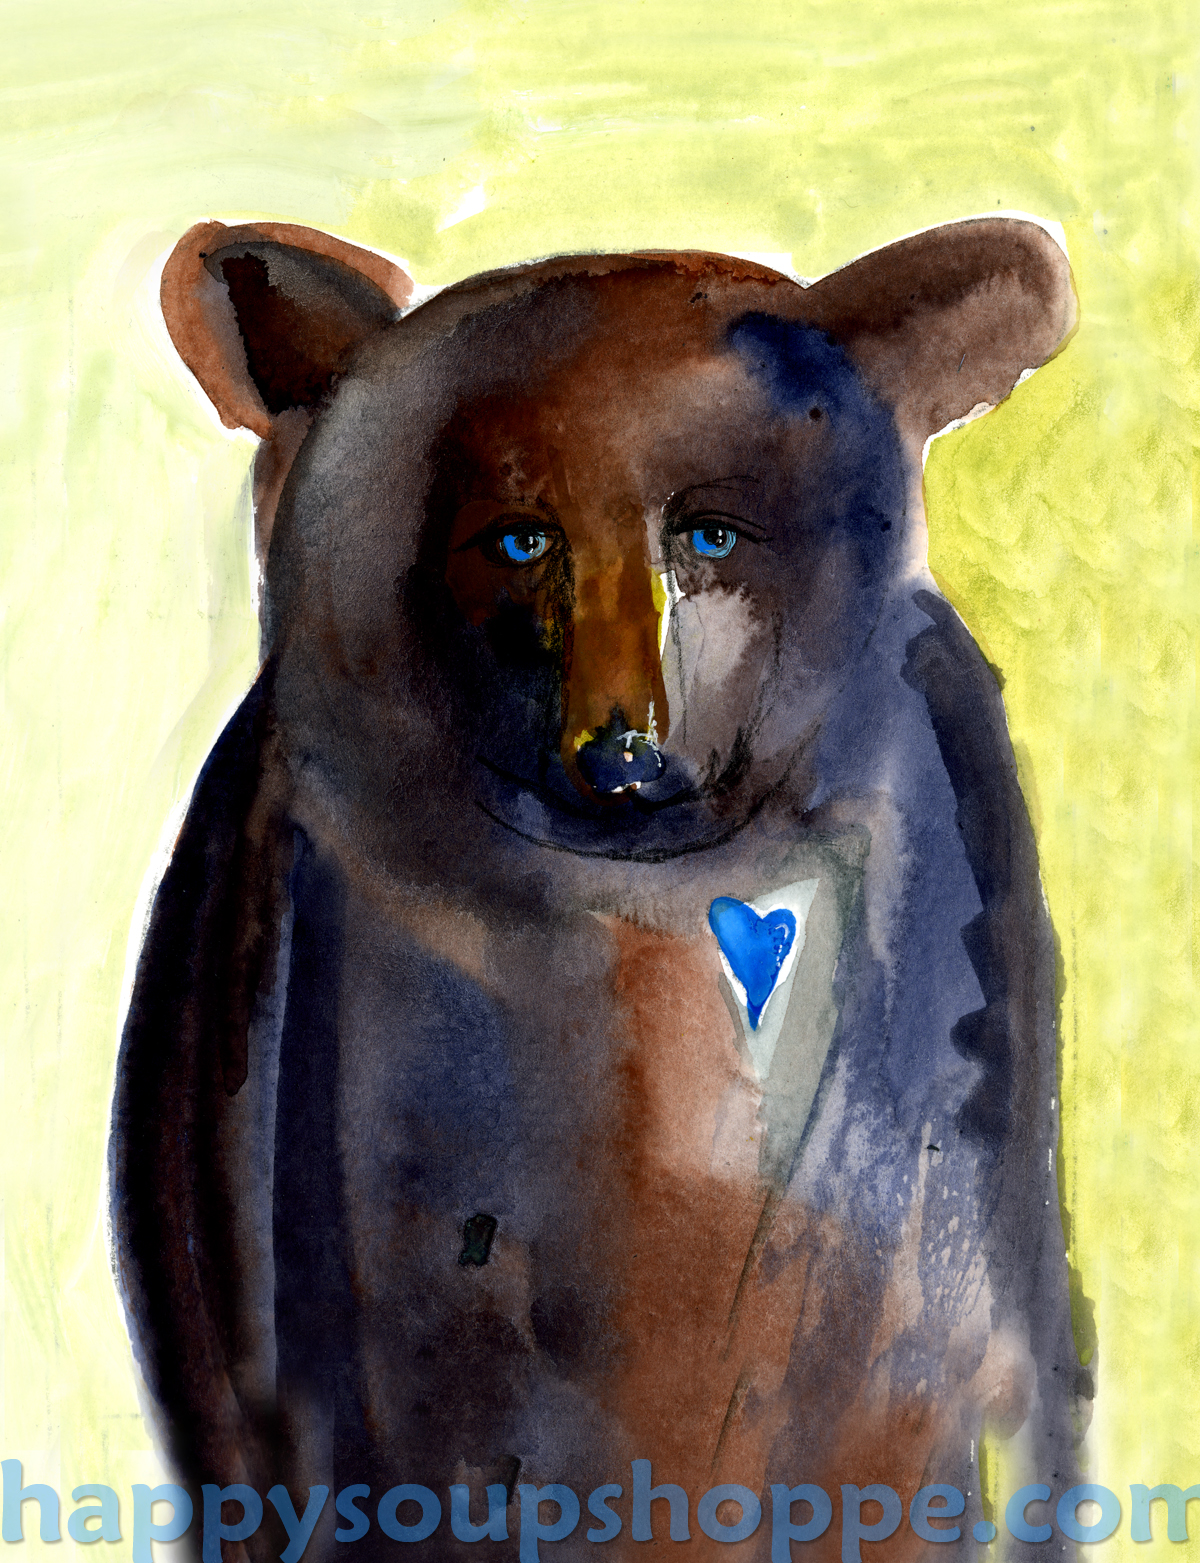 mixed media hand painted peace bear by Vermont artist Cathy Stevens Pratt